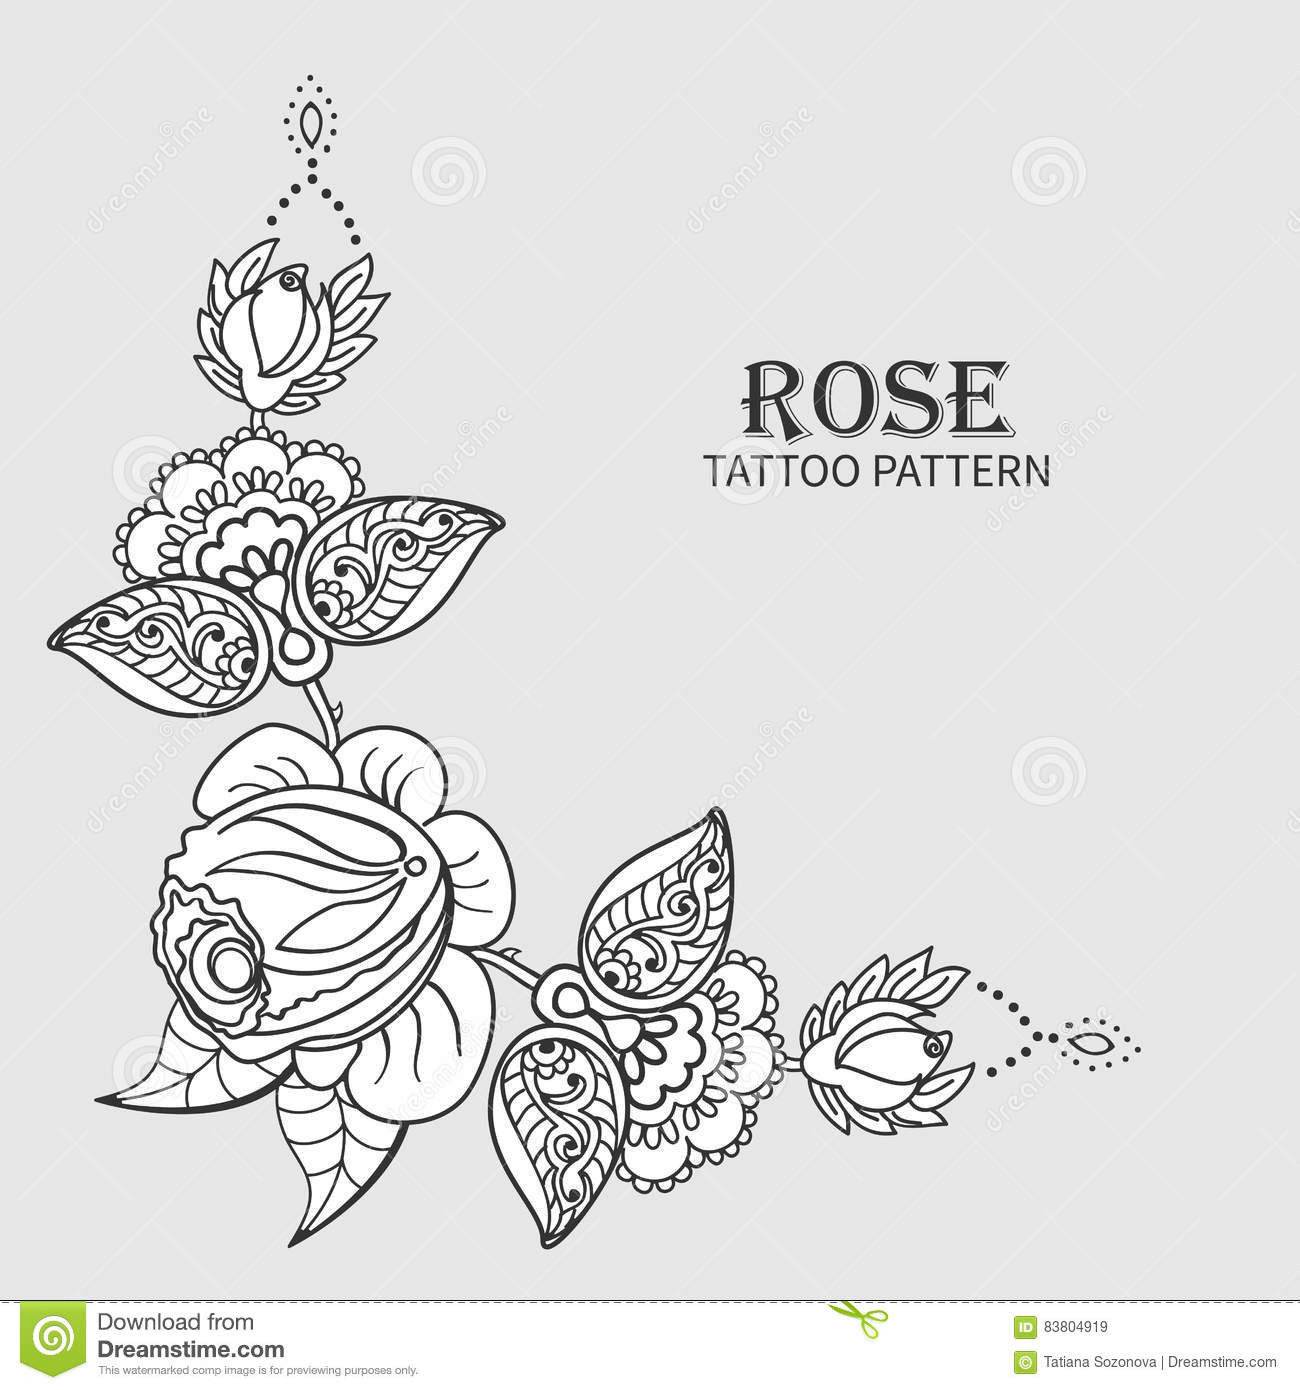 Rose Tattoo Pattern Stock Vector Illustration Of Design 83804919